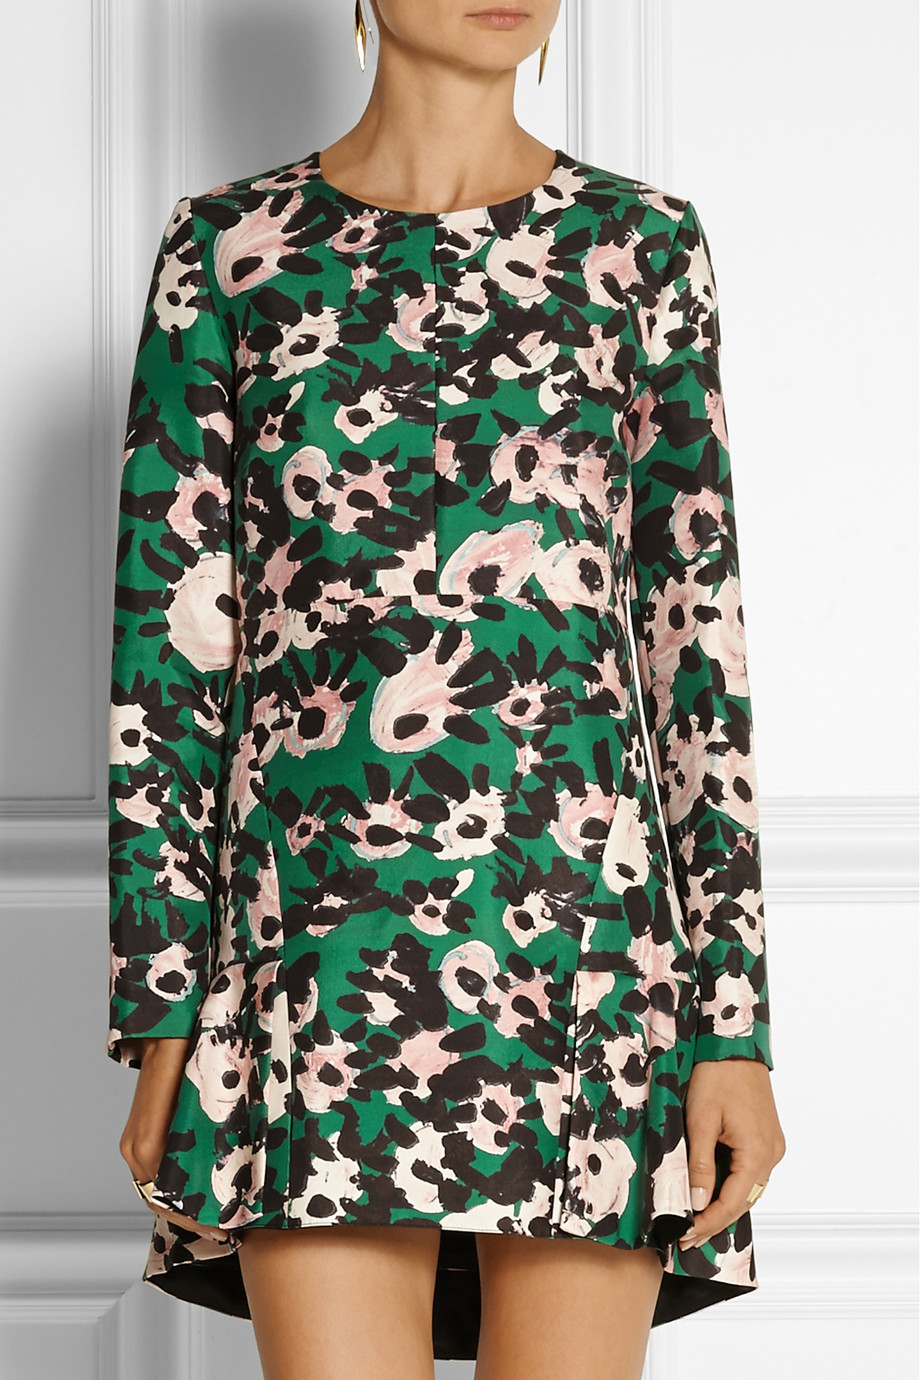 Marni Silk-Blend Mini Dress Sale High Quality Cheap Sale Low Price Fee Shipping Cheap Geniue Stockist Footlocker Pictures Online Discount Affordable pgXa0ed50V